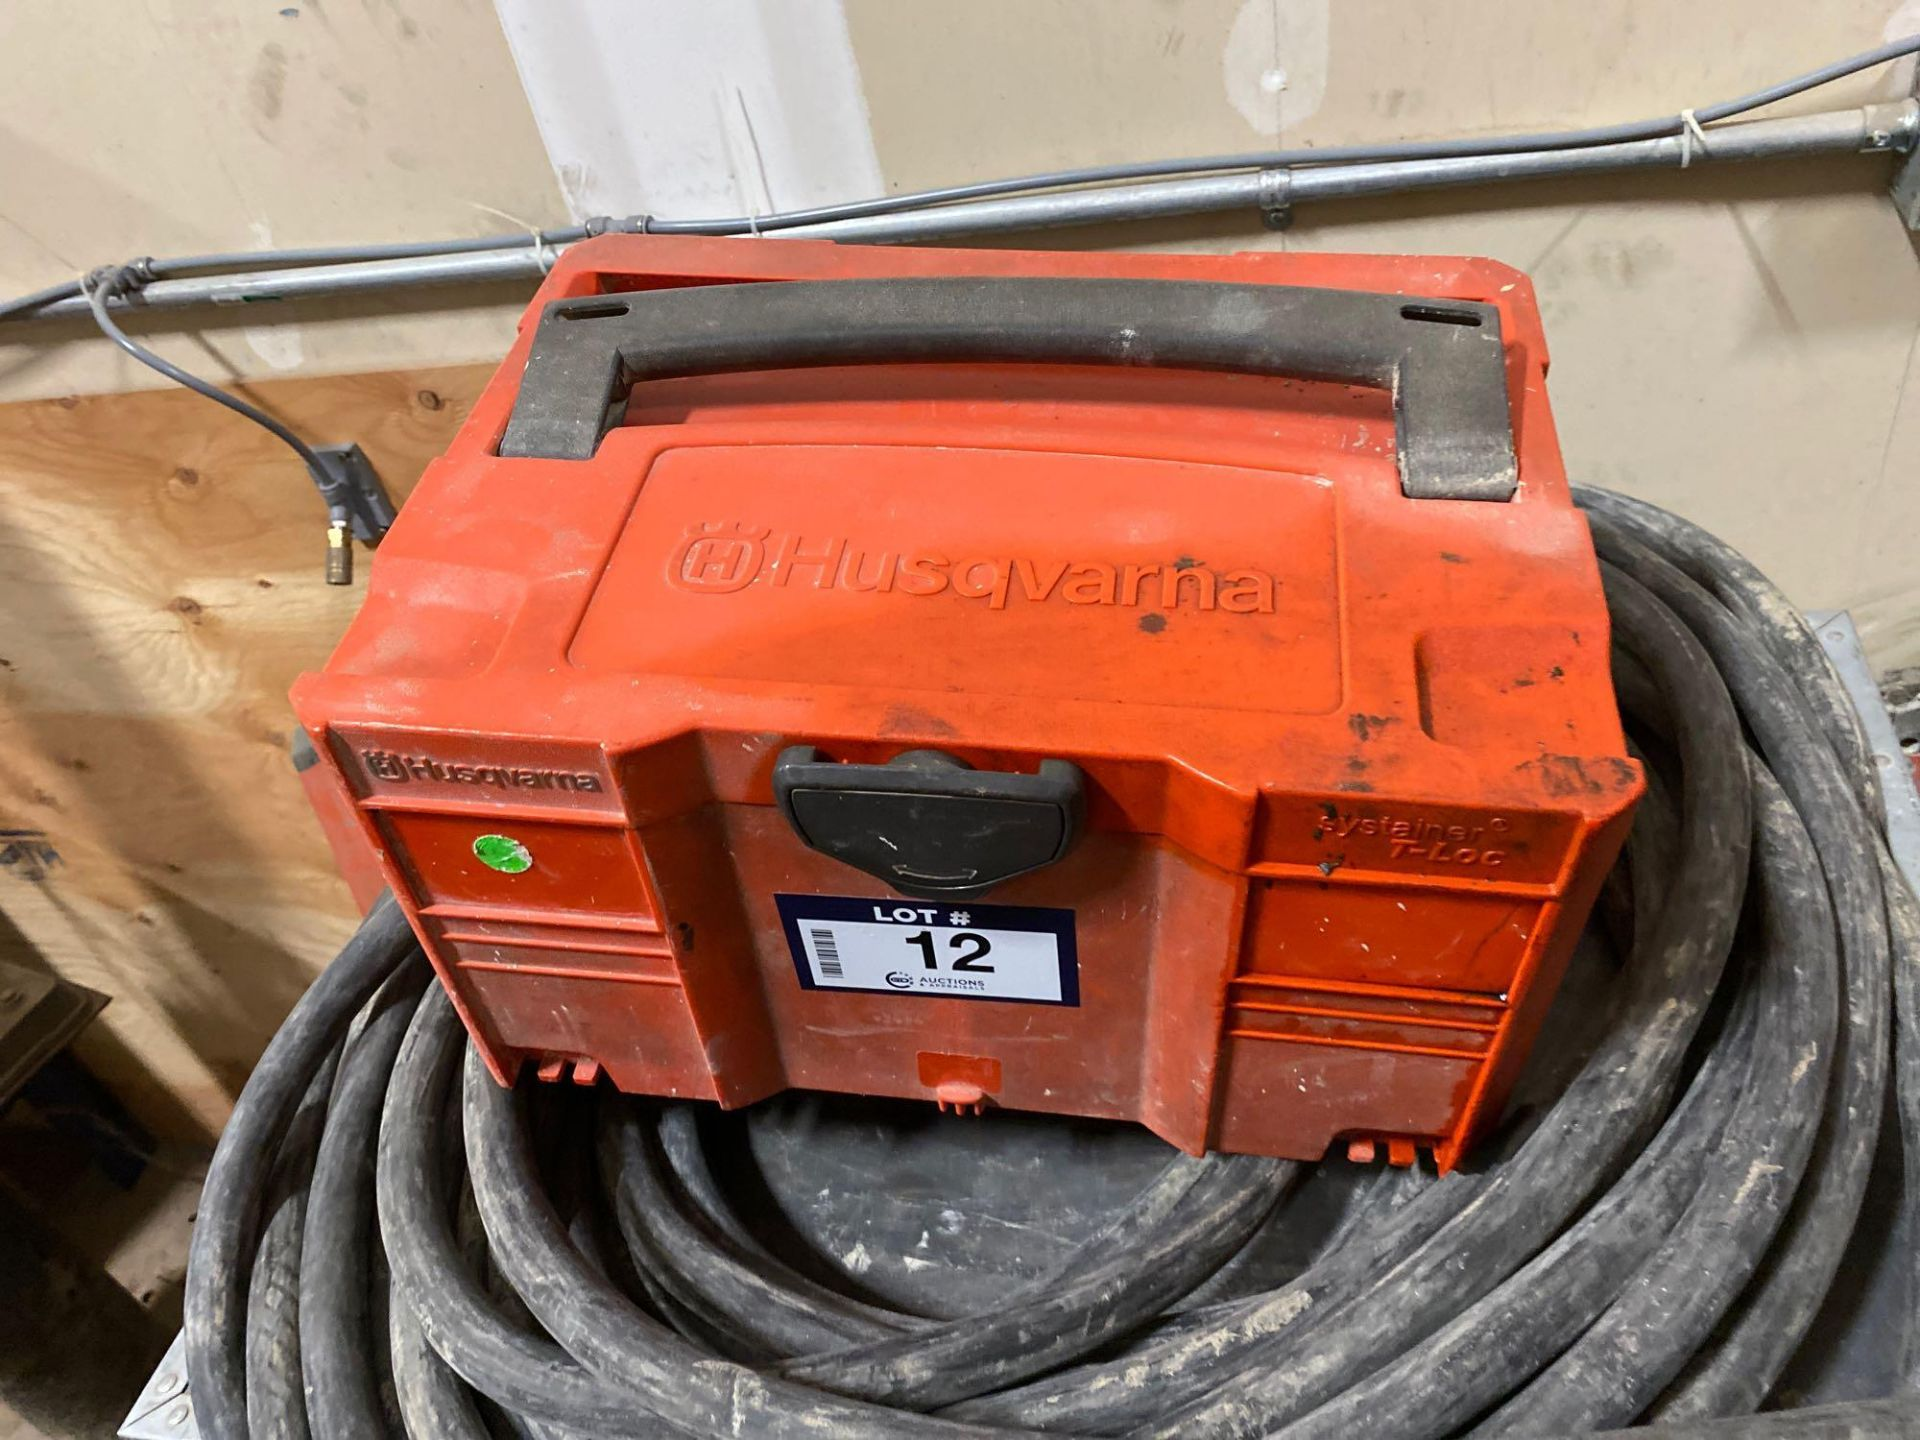 Husqvarna WS 440 HF Electric Wall Saw, Husqvarna PP 440 HF Power Pack, Track System, Blade Guards, e - Image 7 of 17